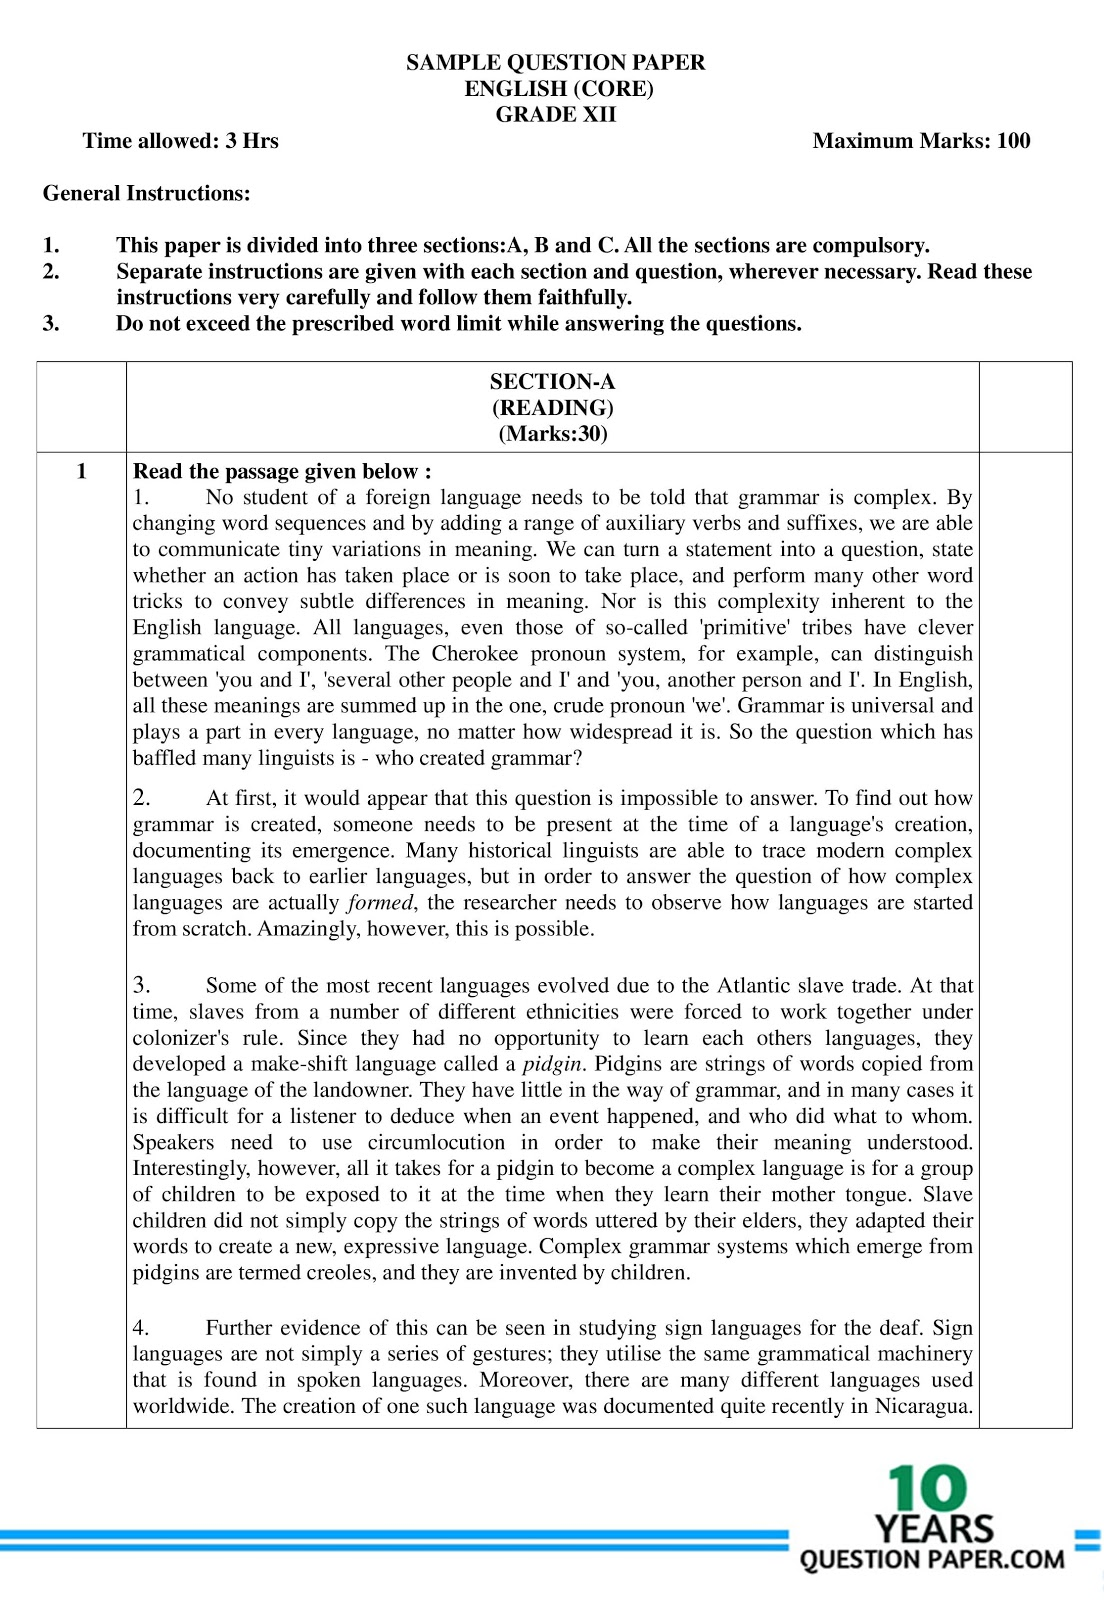 CBSE class 12th English Core sample paper